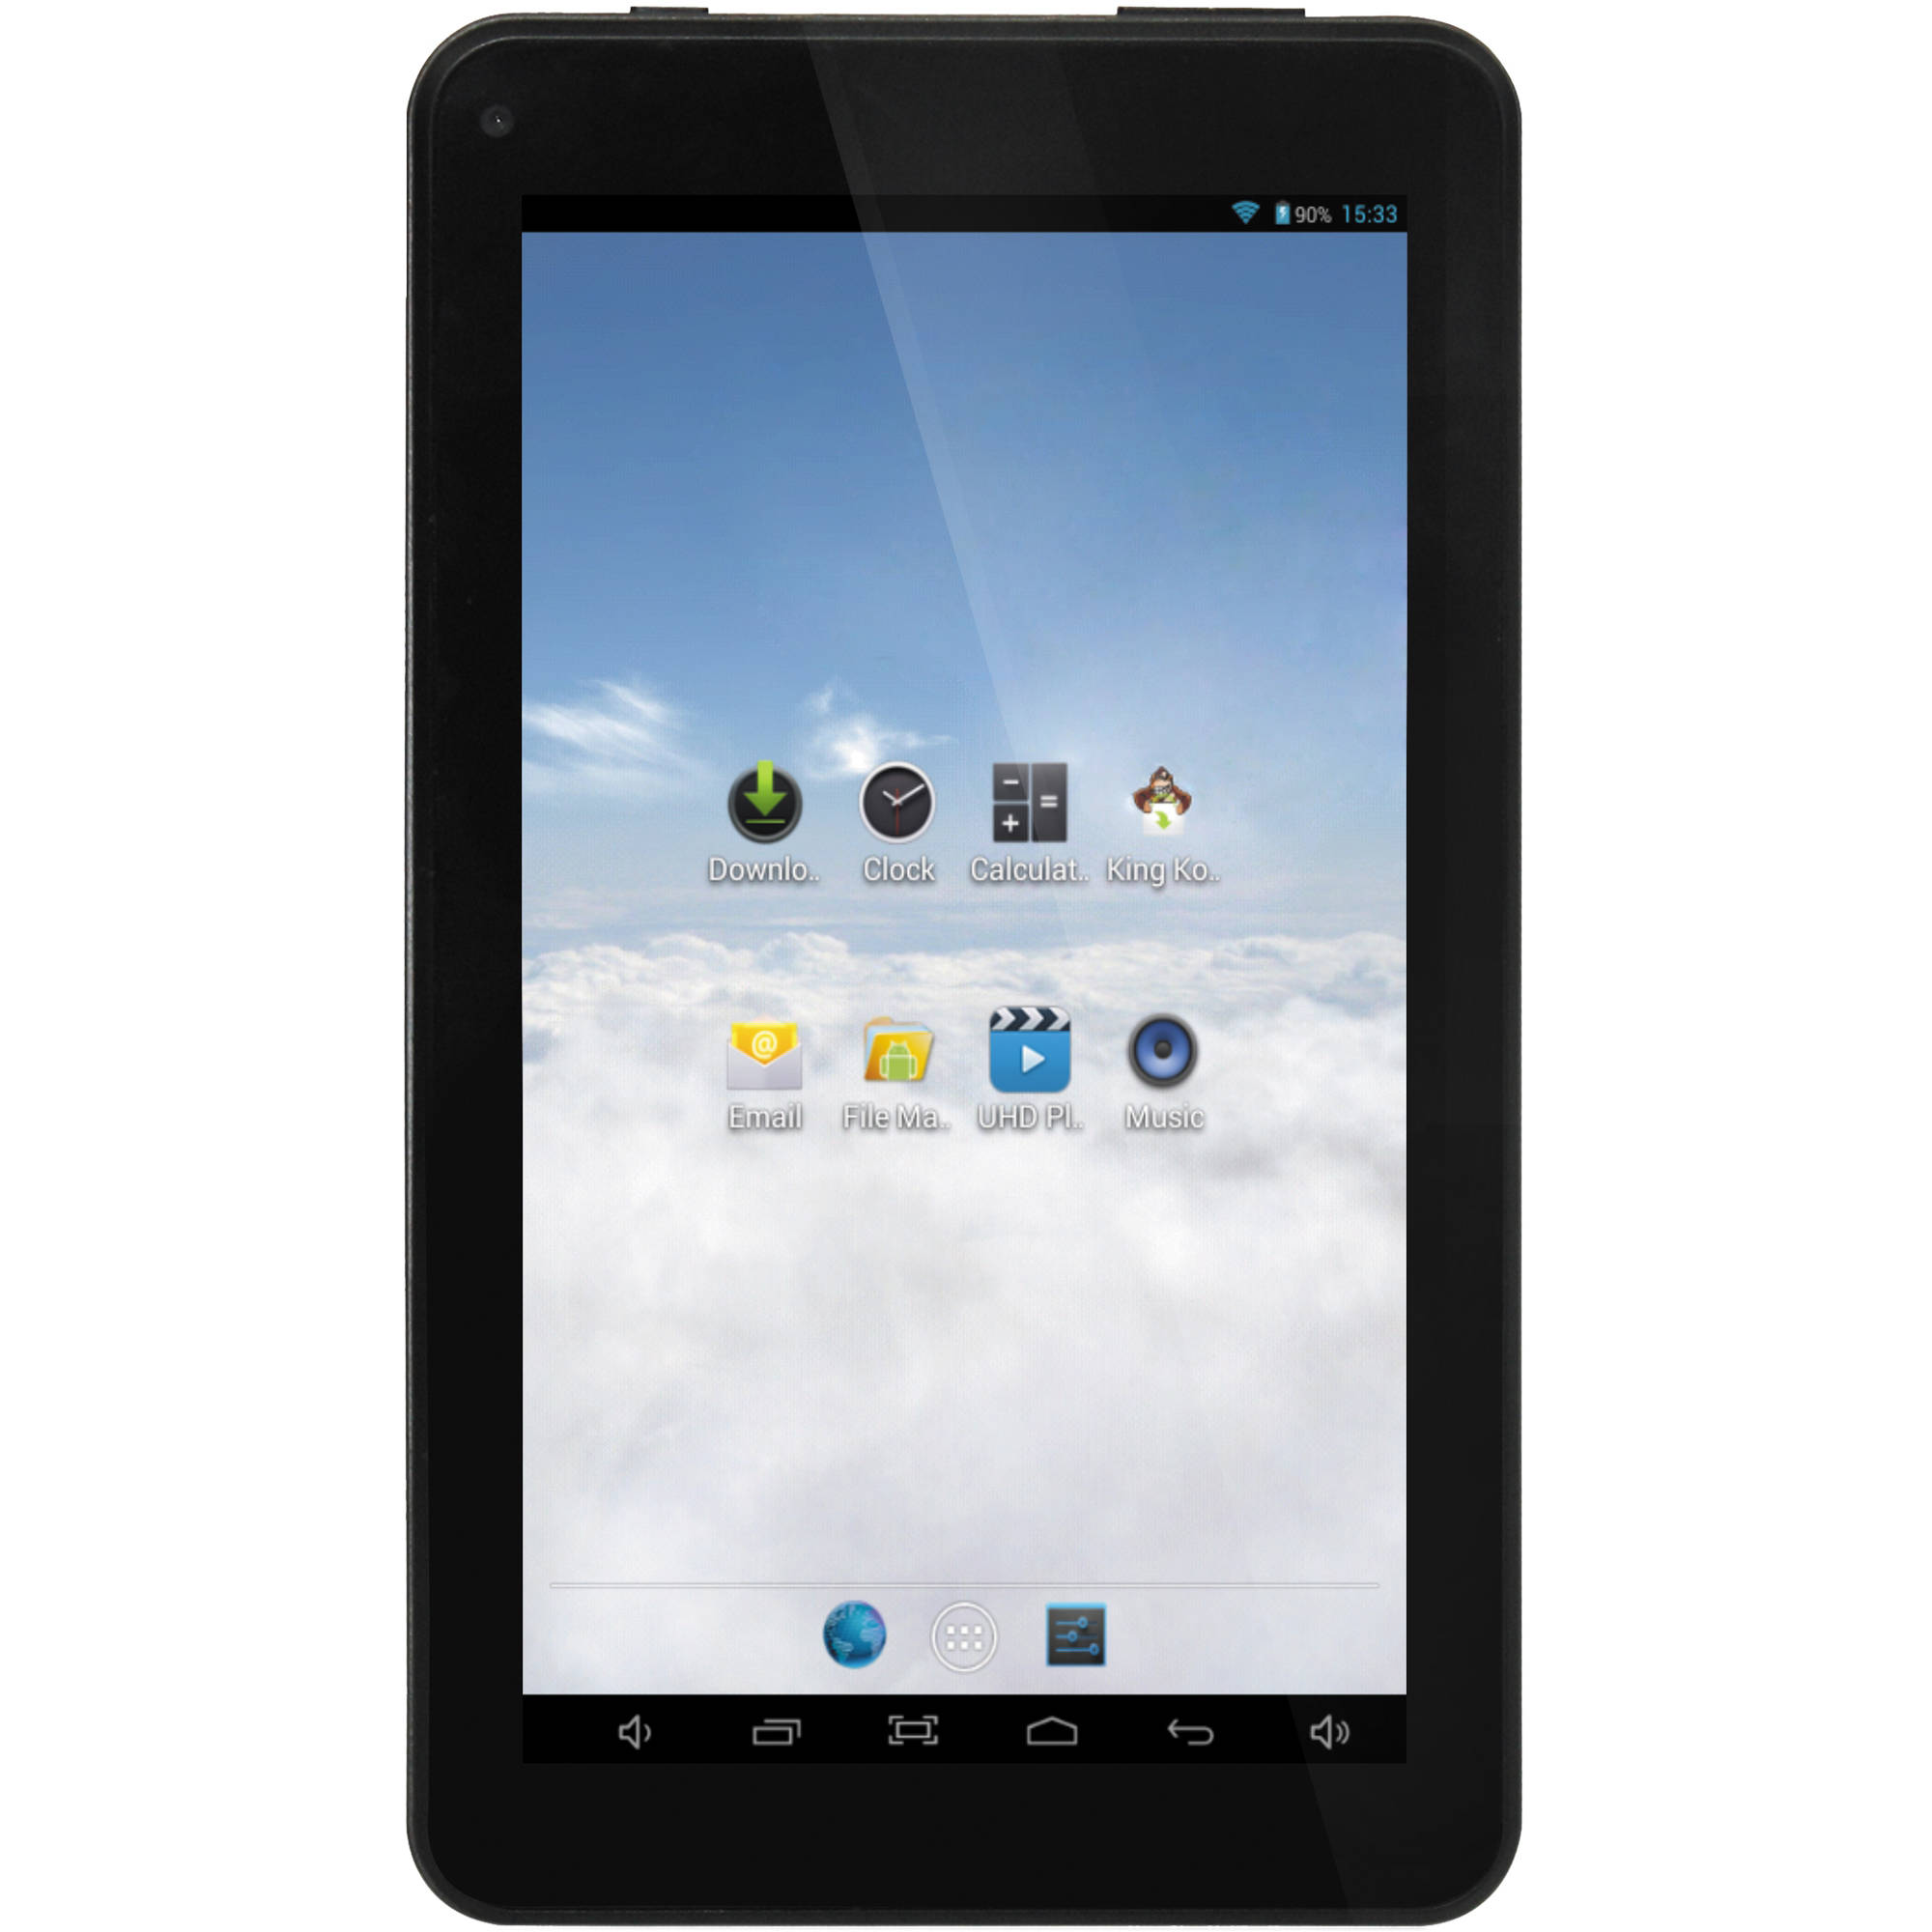 iView 8GB I-700 SupraPad 7